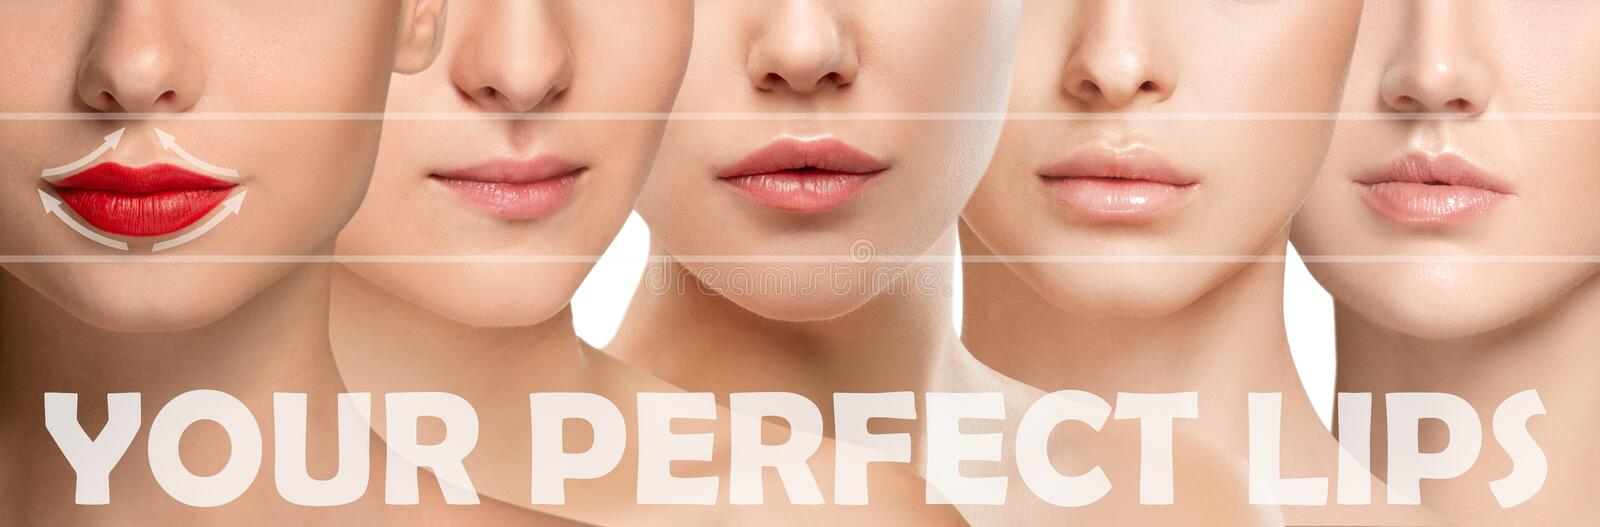 Beautiful female face, concept of skincare and lifting. Perfect lips. Beautiful close up faces on white background. Concept of filler injection, cosmetics stock image